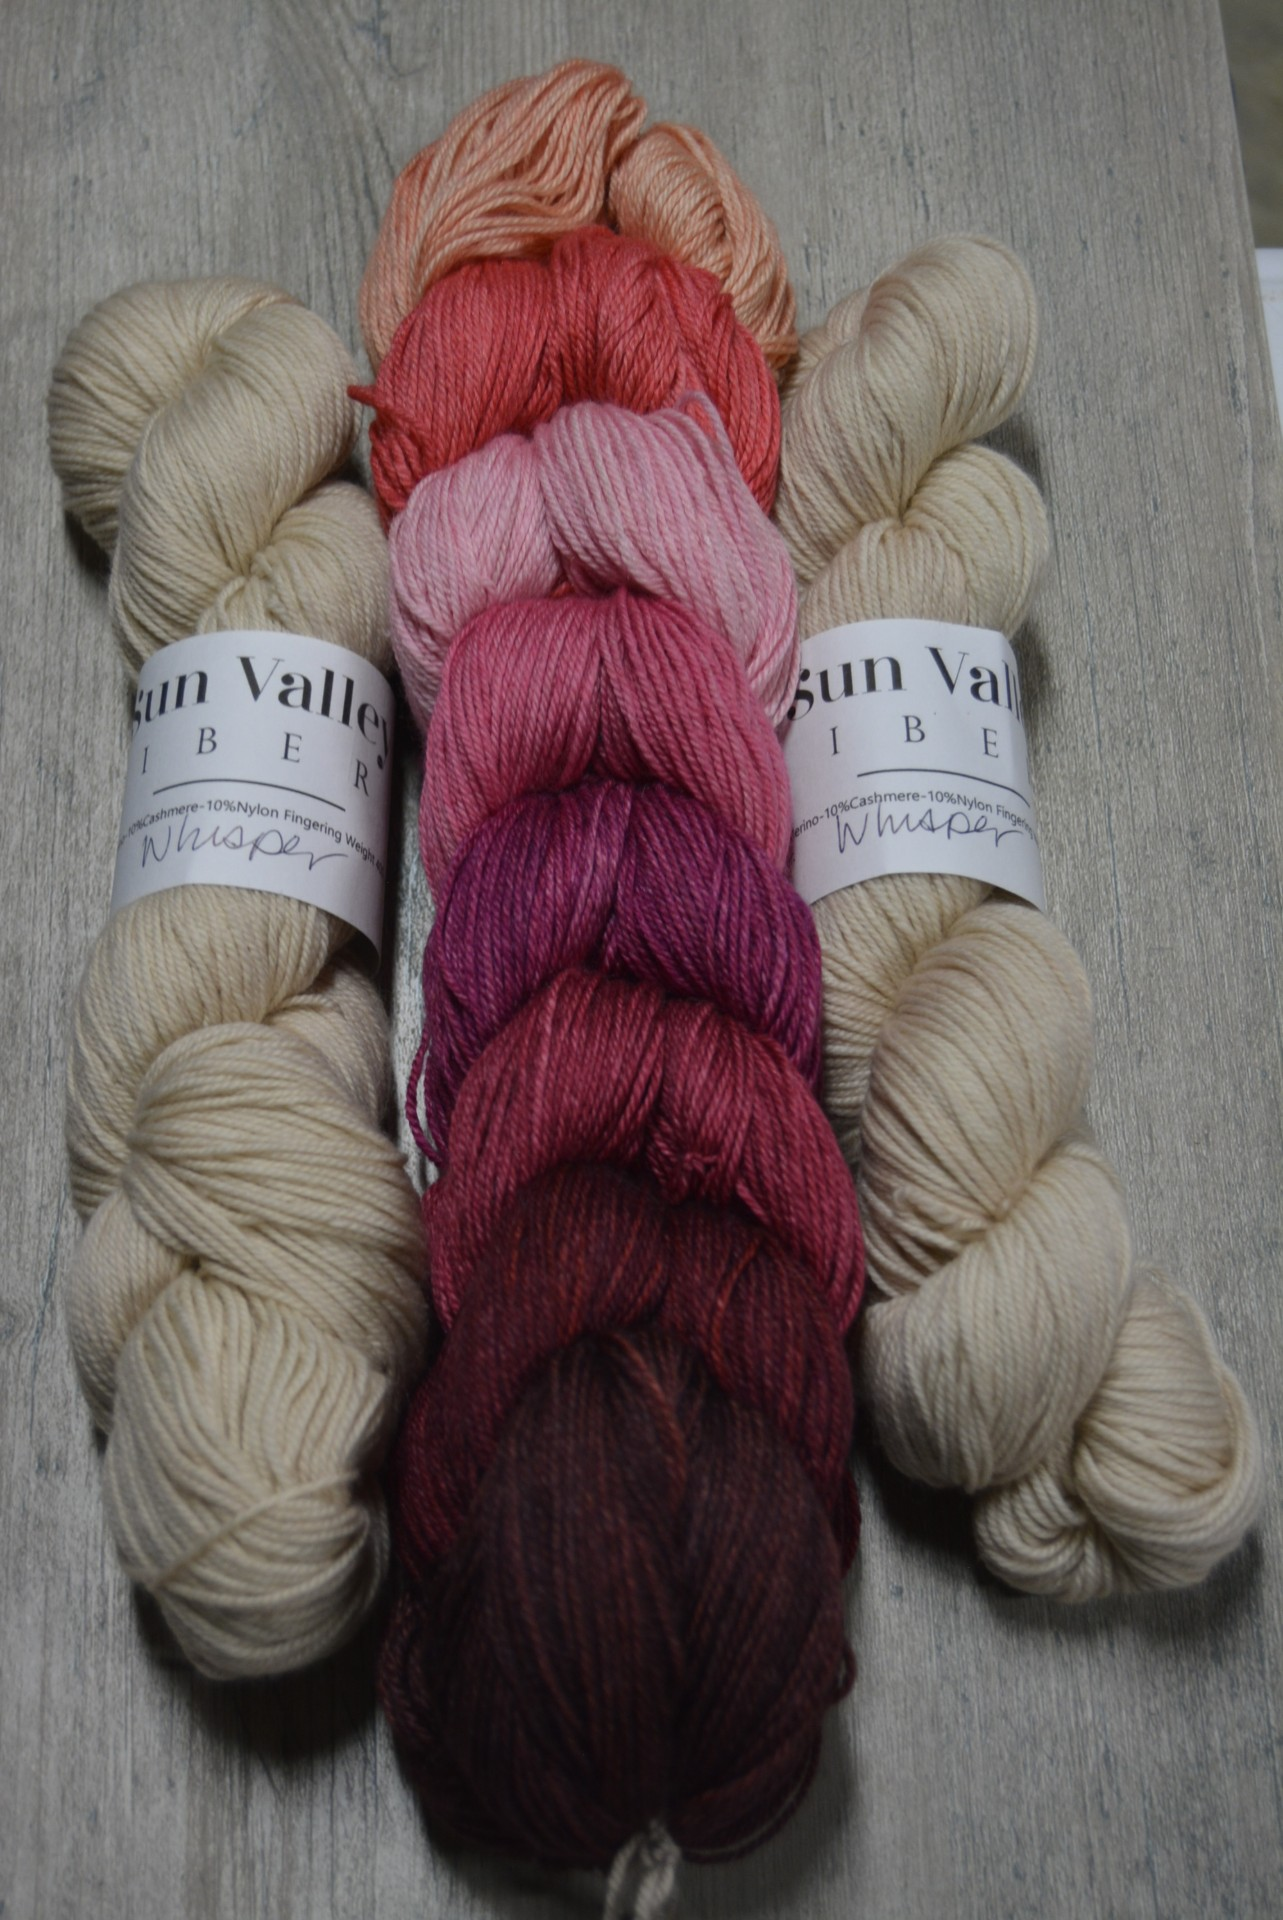 Painted Bricks in Pinks contains 8   100 yard skeins of the following colors:  Etude, Coral, Blush, Persuasion, Berries, Annie, Mulberry, Intermission And also 2  400 yard skeins of Whisper